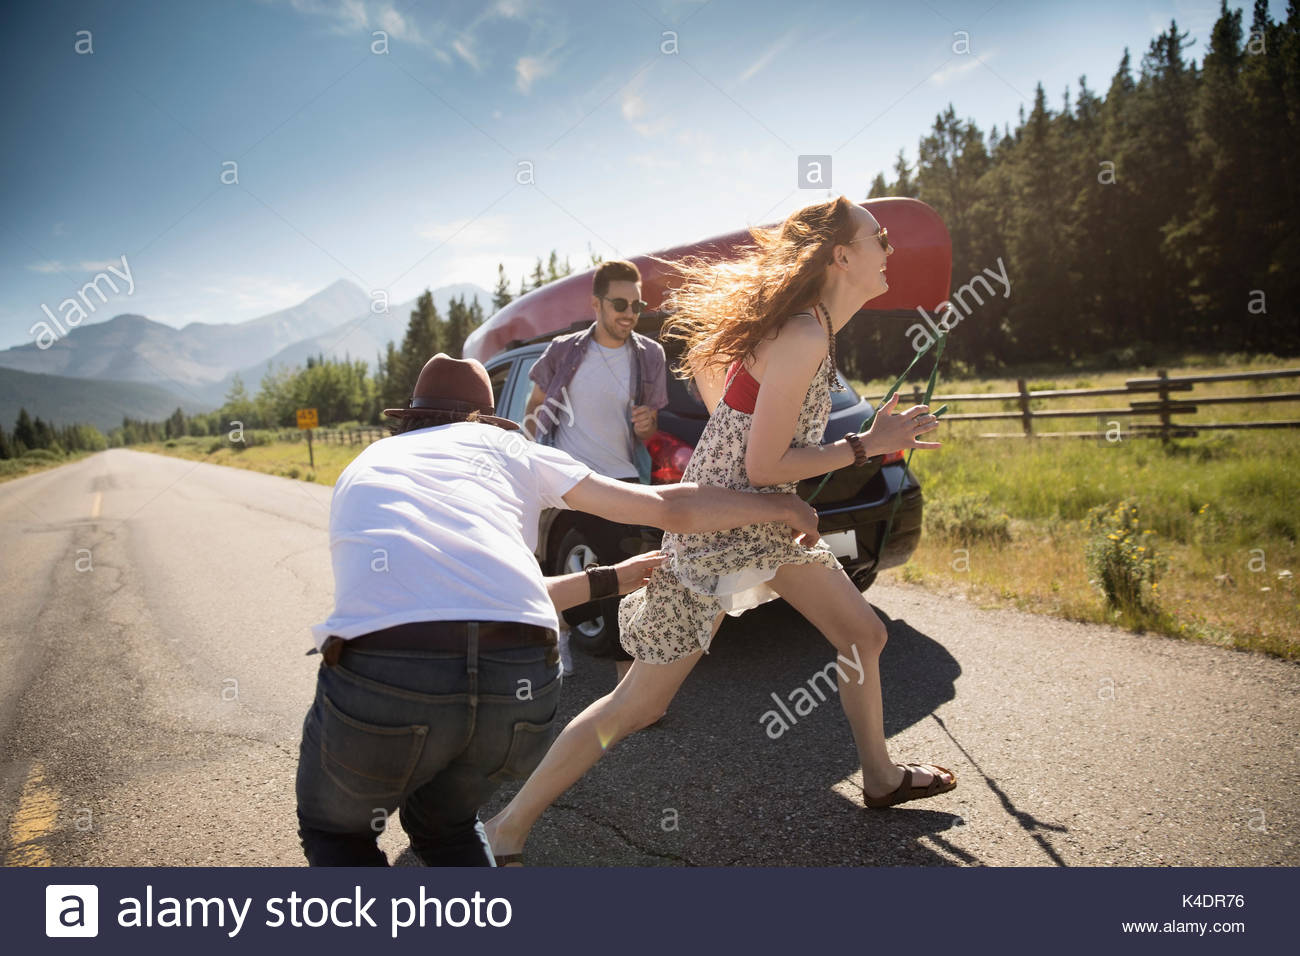 Playful friends on sunny rural road, enjoying summer road trip - Stock Image